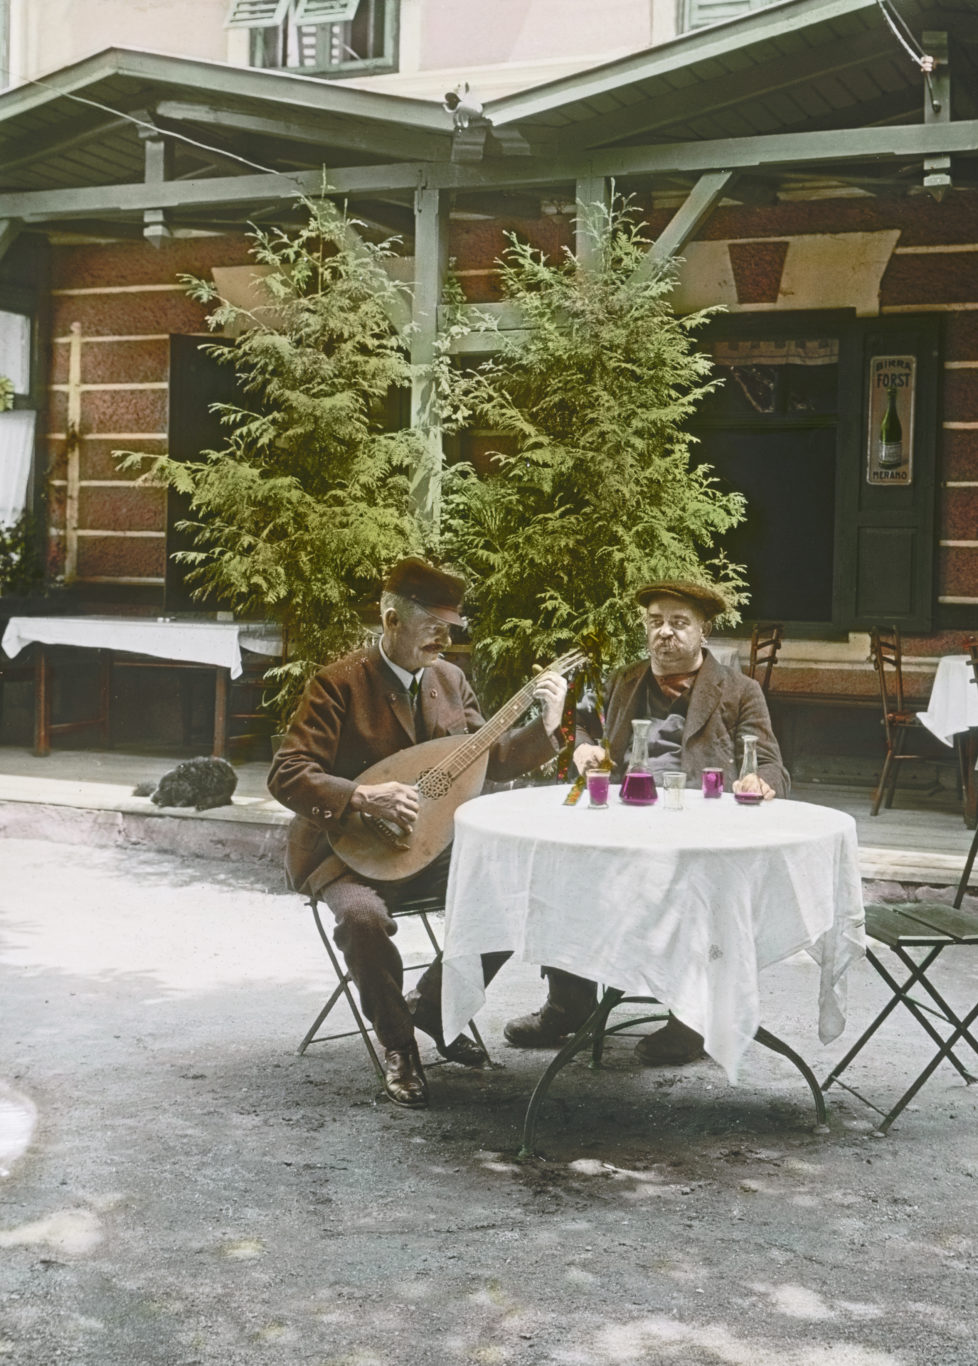 South Tyrol. Italy: Two revelers, with a mandolin, in front of a South Tyrolean Restaurant. about 1925. Handcolored lantern slide. (Photo by Imagno/Getty Images) S?dtirol. Italien: Zwei Zecher, einer mit Mandoline, vor einem S?dtiroler Gasthaus. Um 1925. Handkoloriertes Glasdiapositiv. *** Local Caption *** *** Local Caption ***